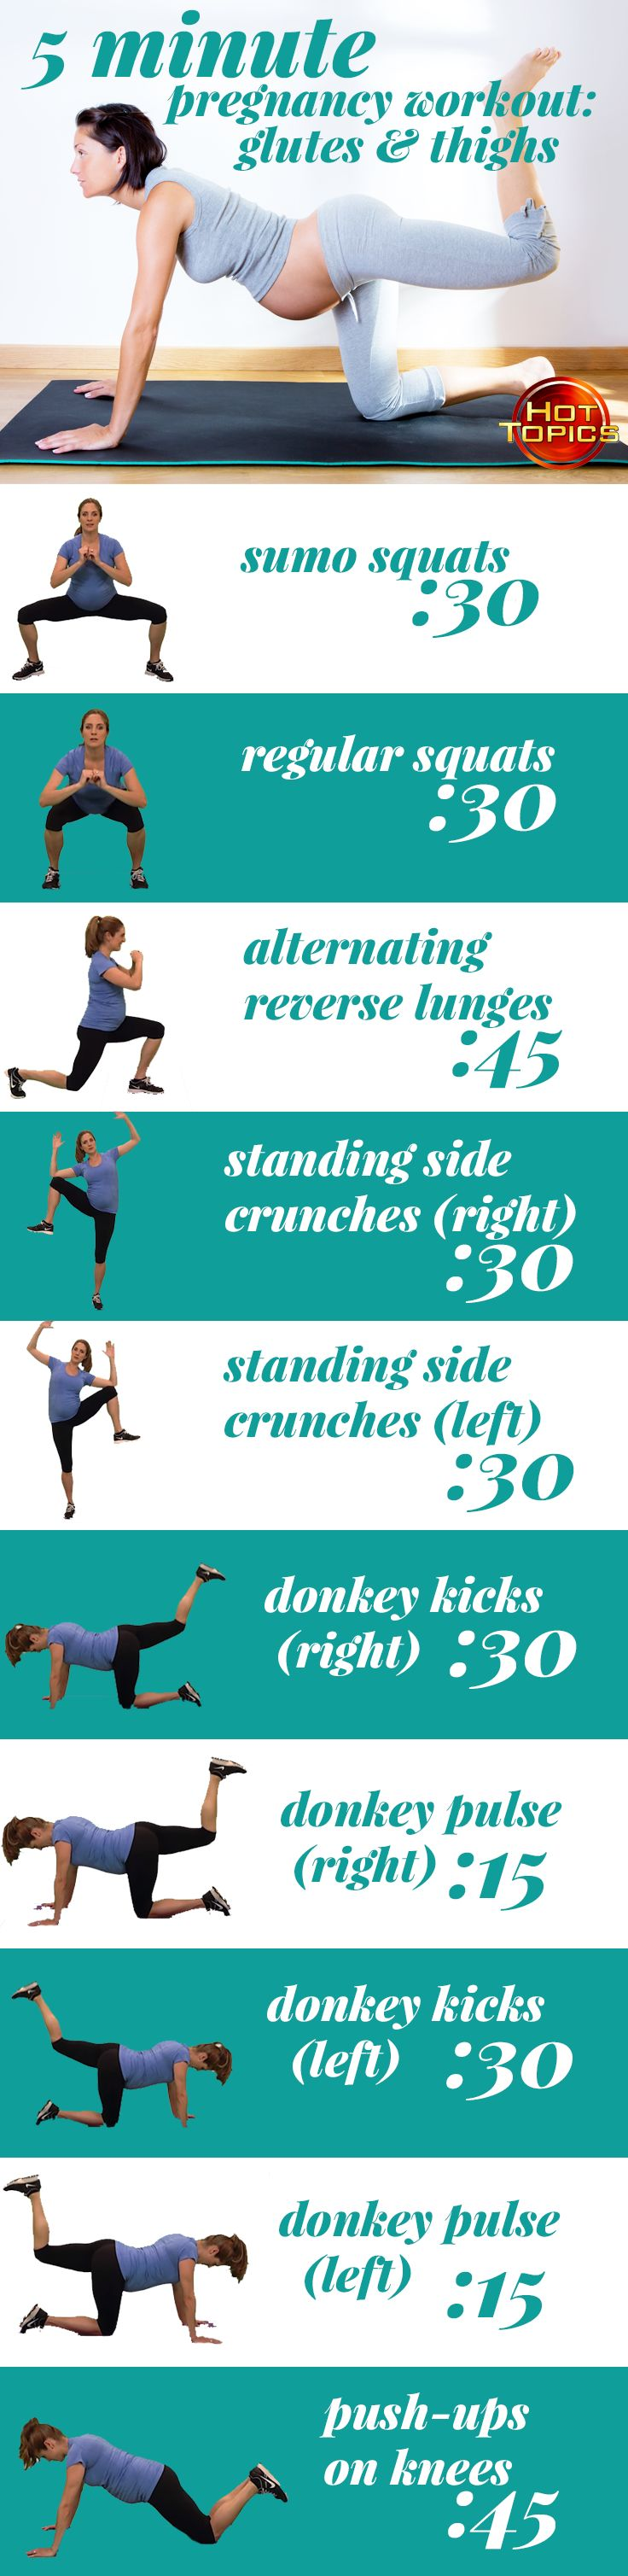 This five-minute pregnancy workout will help shape up your glutes and thighs! #pregnancyworkout